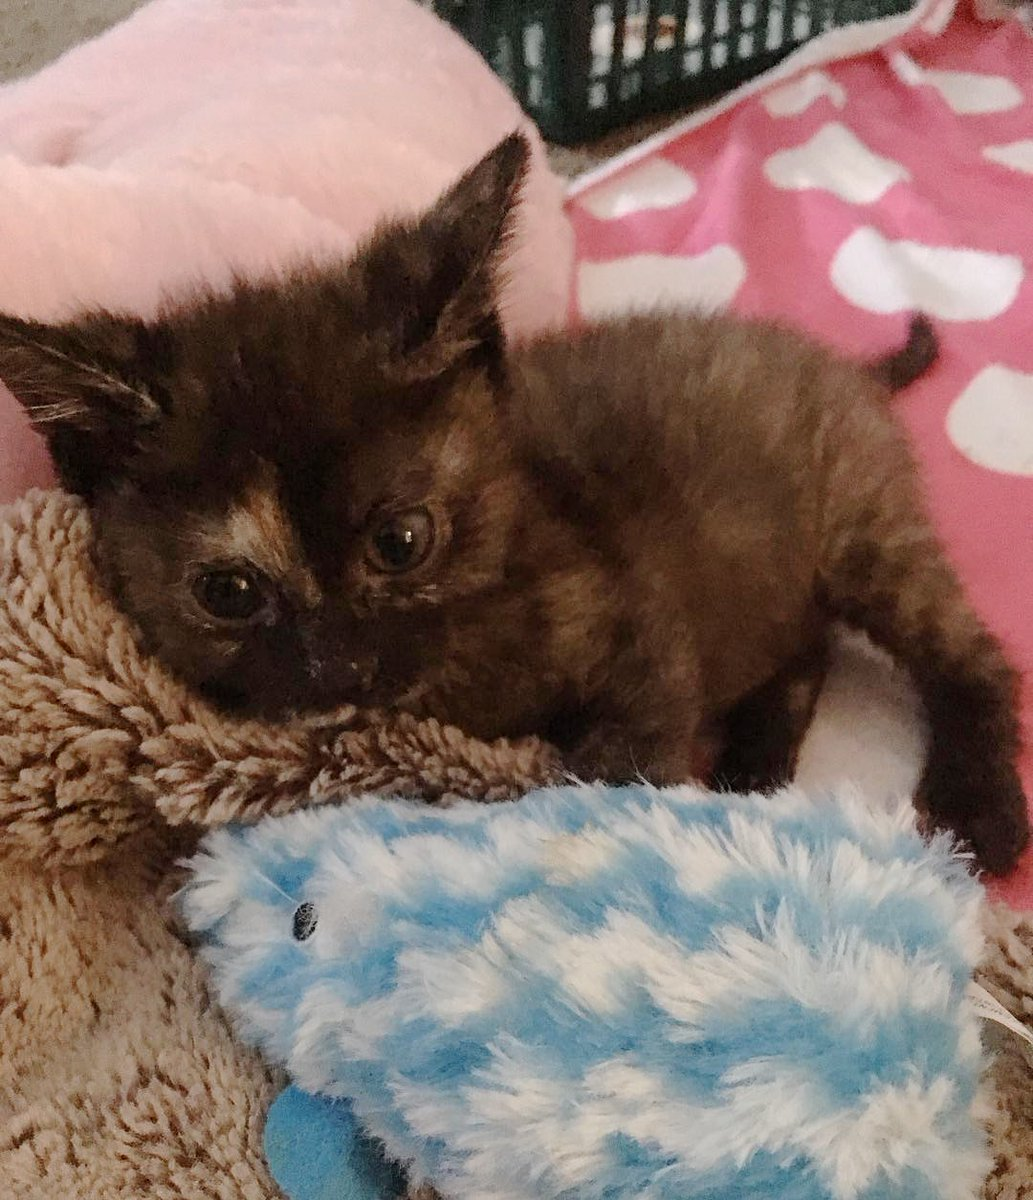 This wobbly kitty outlived everyones expectations and grew to be the happiest cat. See full story and updates: lovemeow.com/kitten-wobbly-…